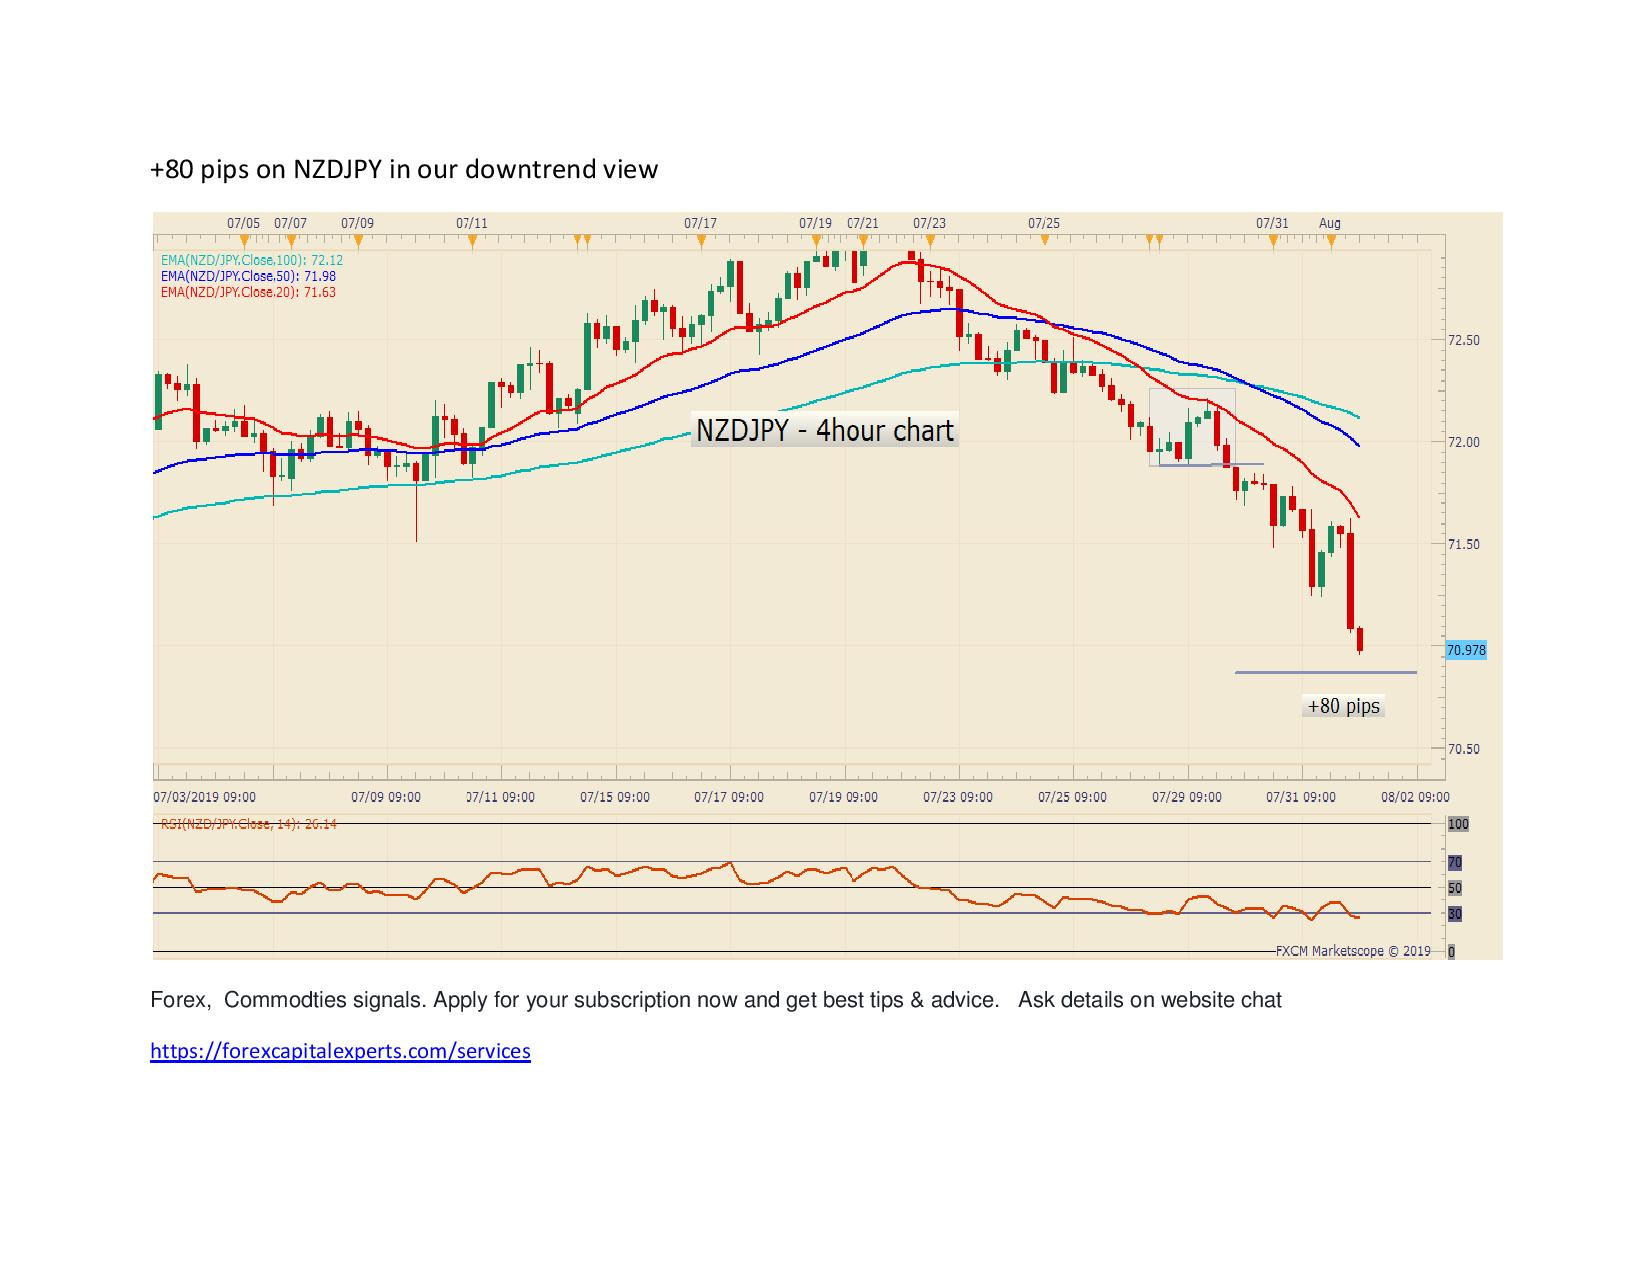 80 pips on NZDJPY in our downtrend view page 001